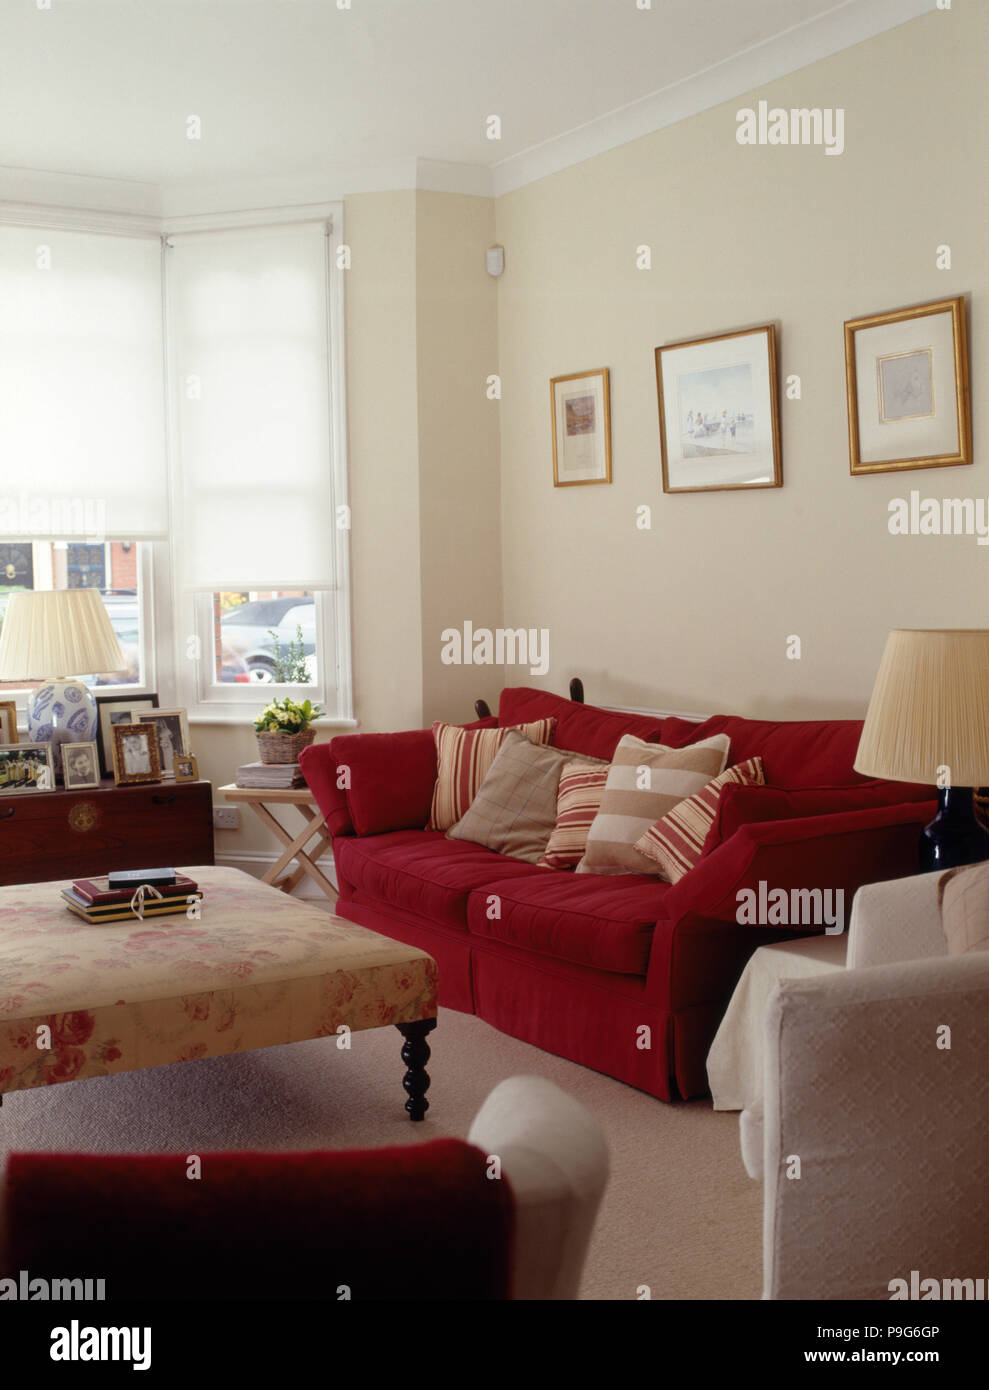 Swell Red Sofa And Floral Patterned Ottoman Stool In A Townhouse Gmtry Best Dining Table And Chair Ideas Images Gmtryco